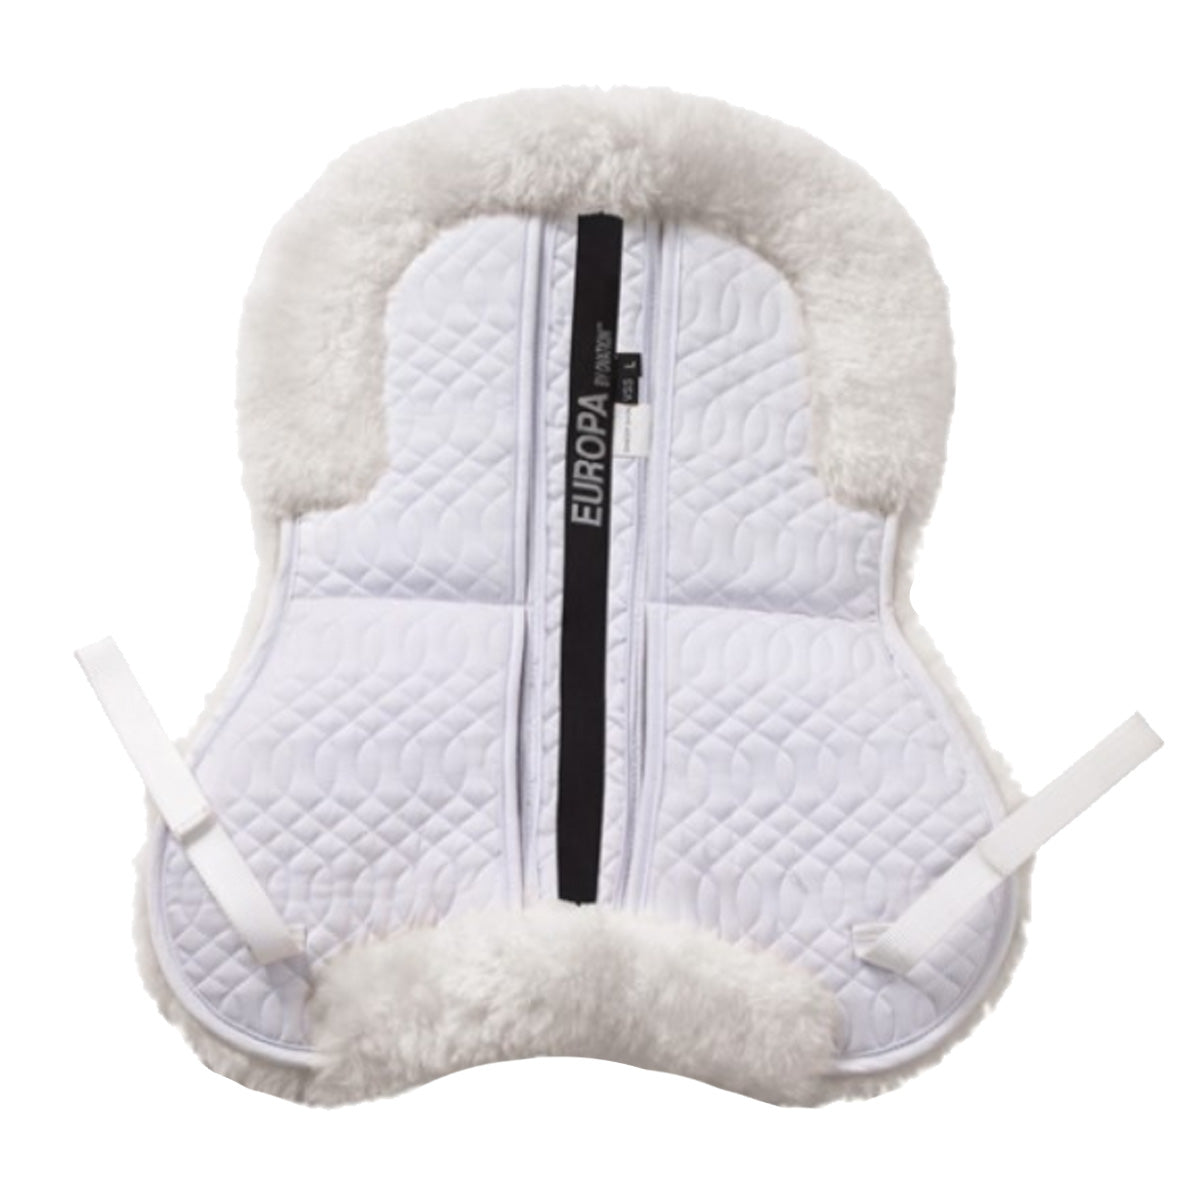 Ovation Europa Sheepskin 4-Shim 1/2 Pad